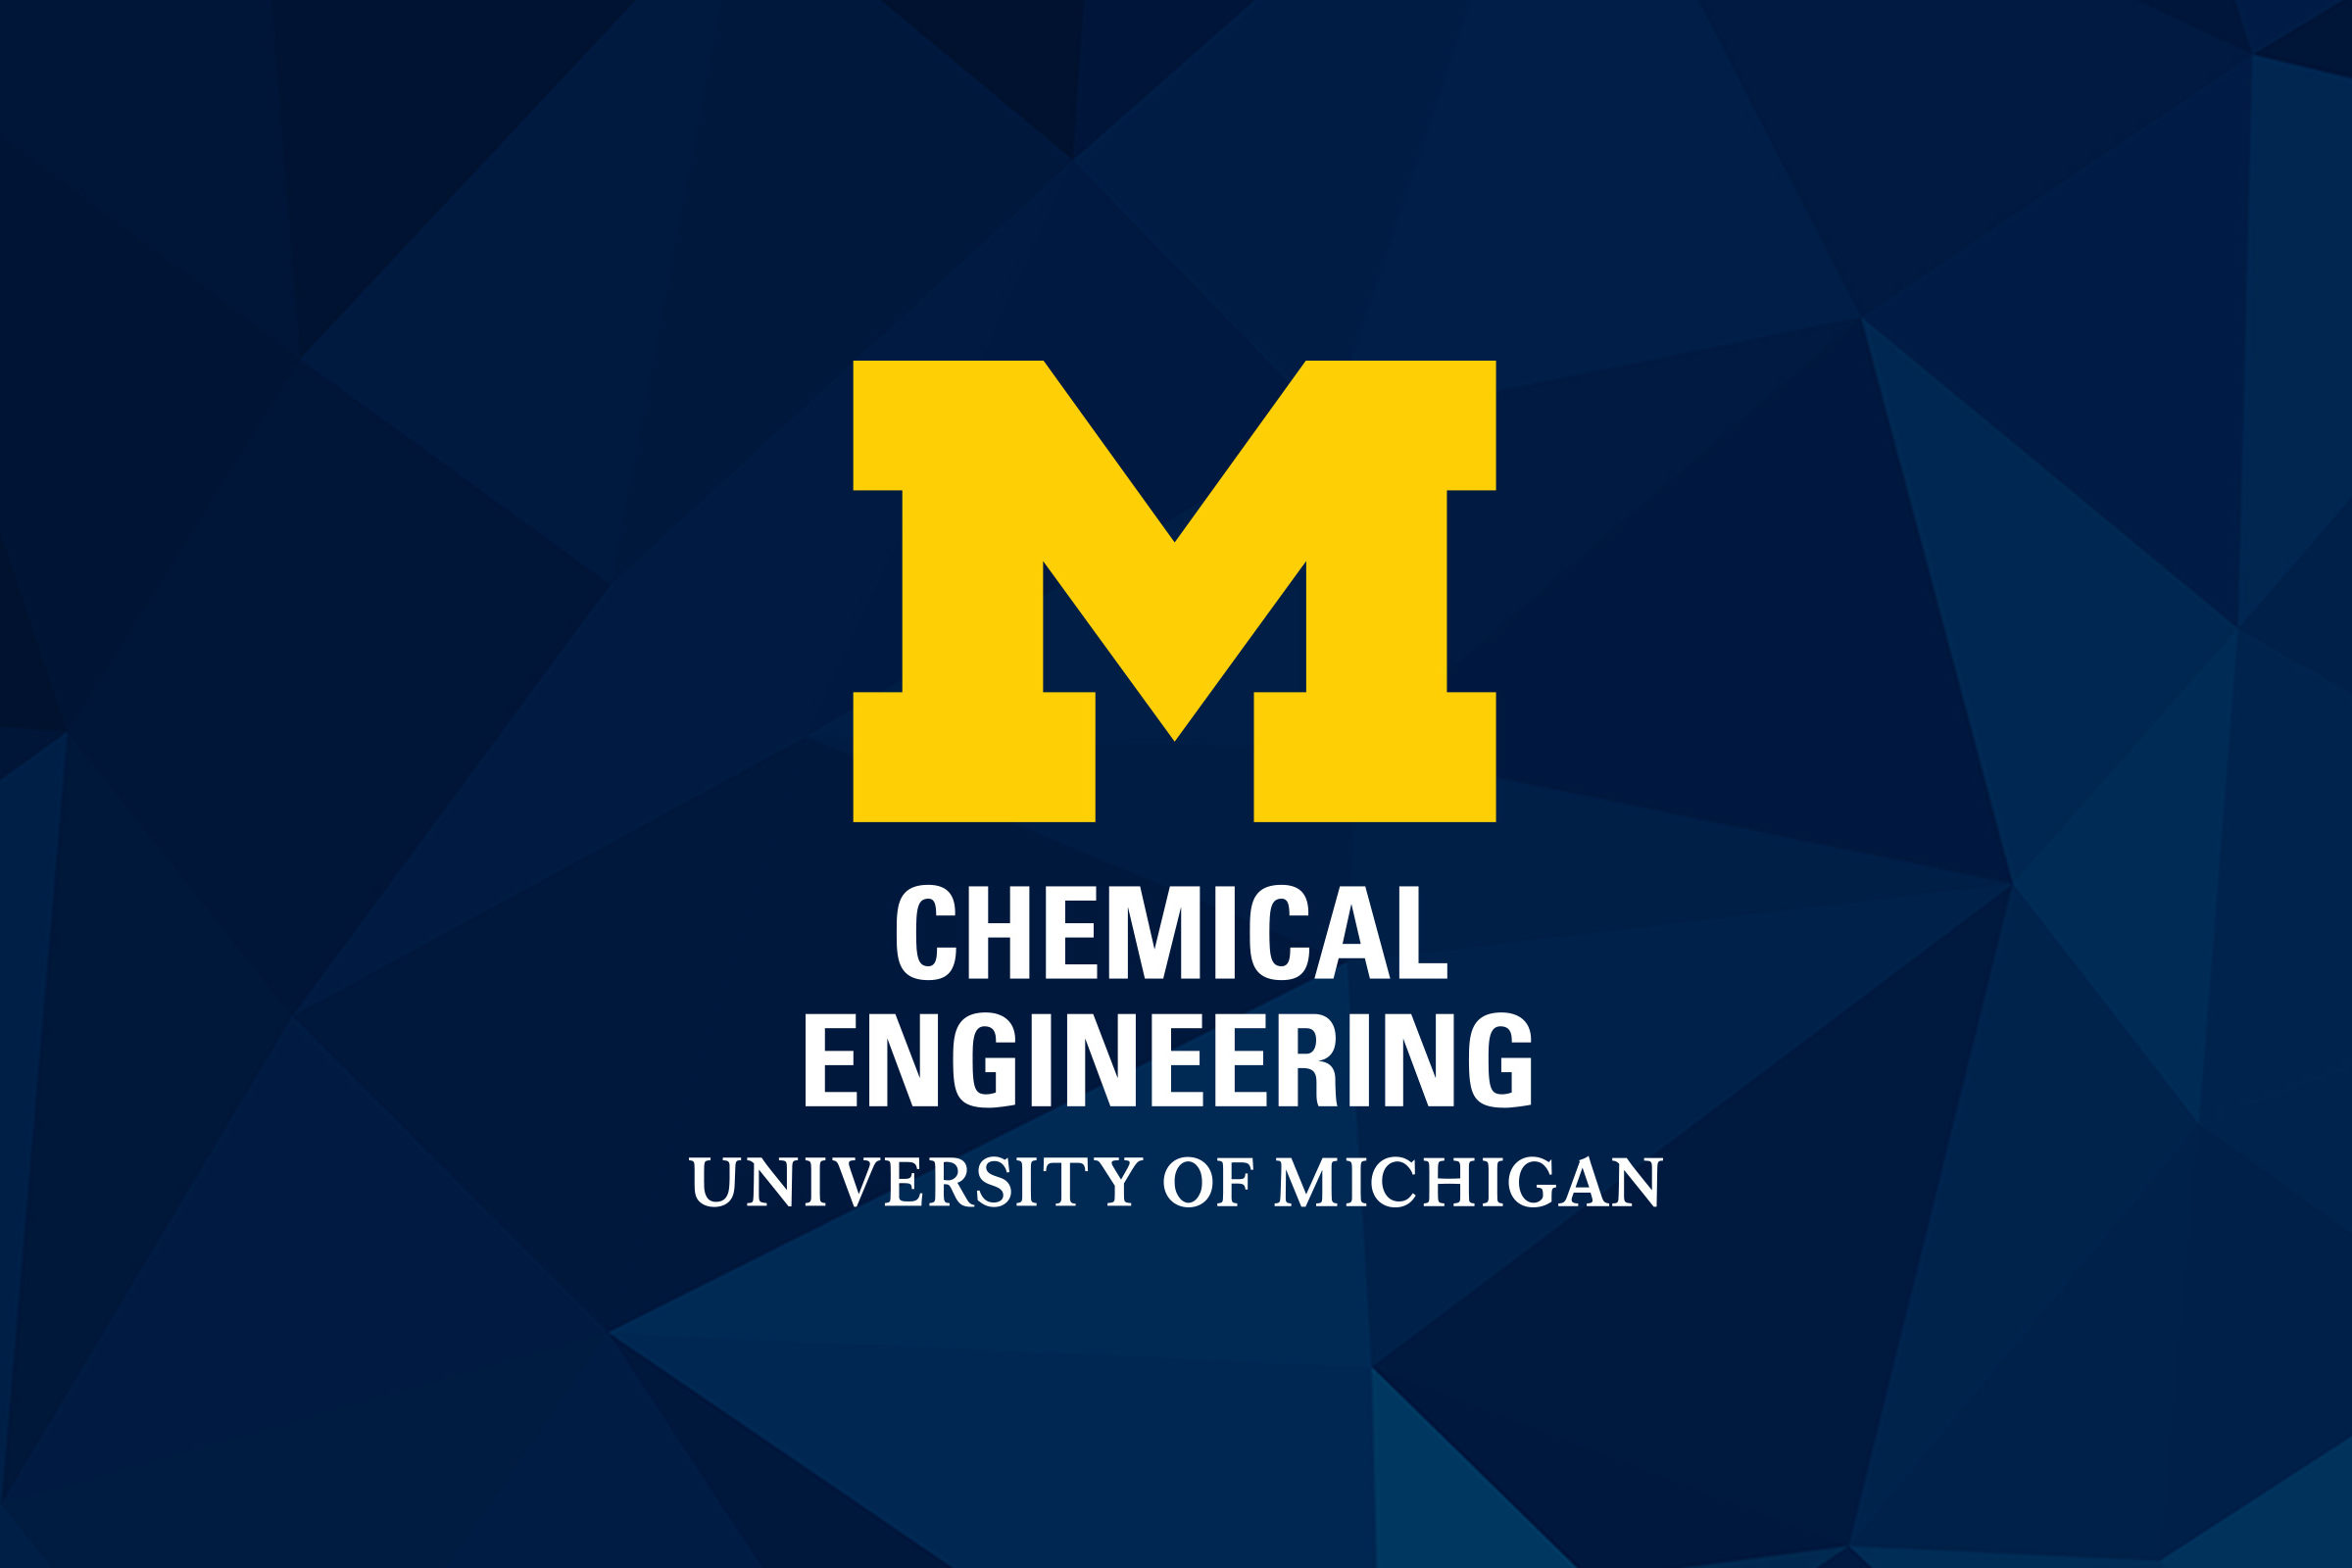 Michigan Chemical Engineering logo